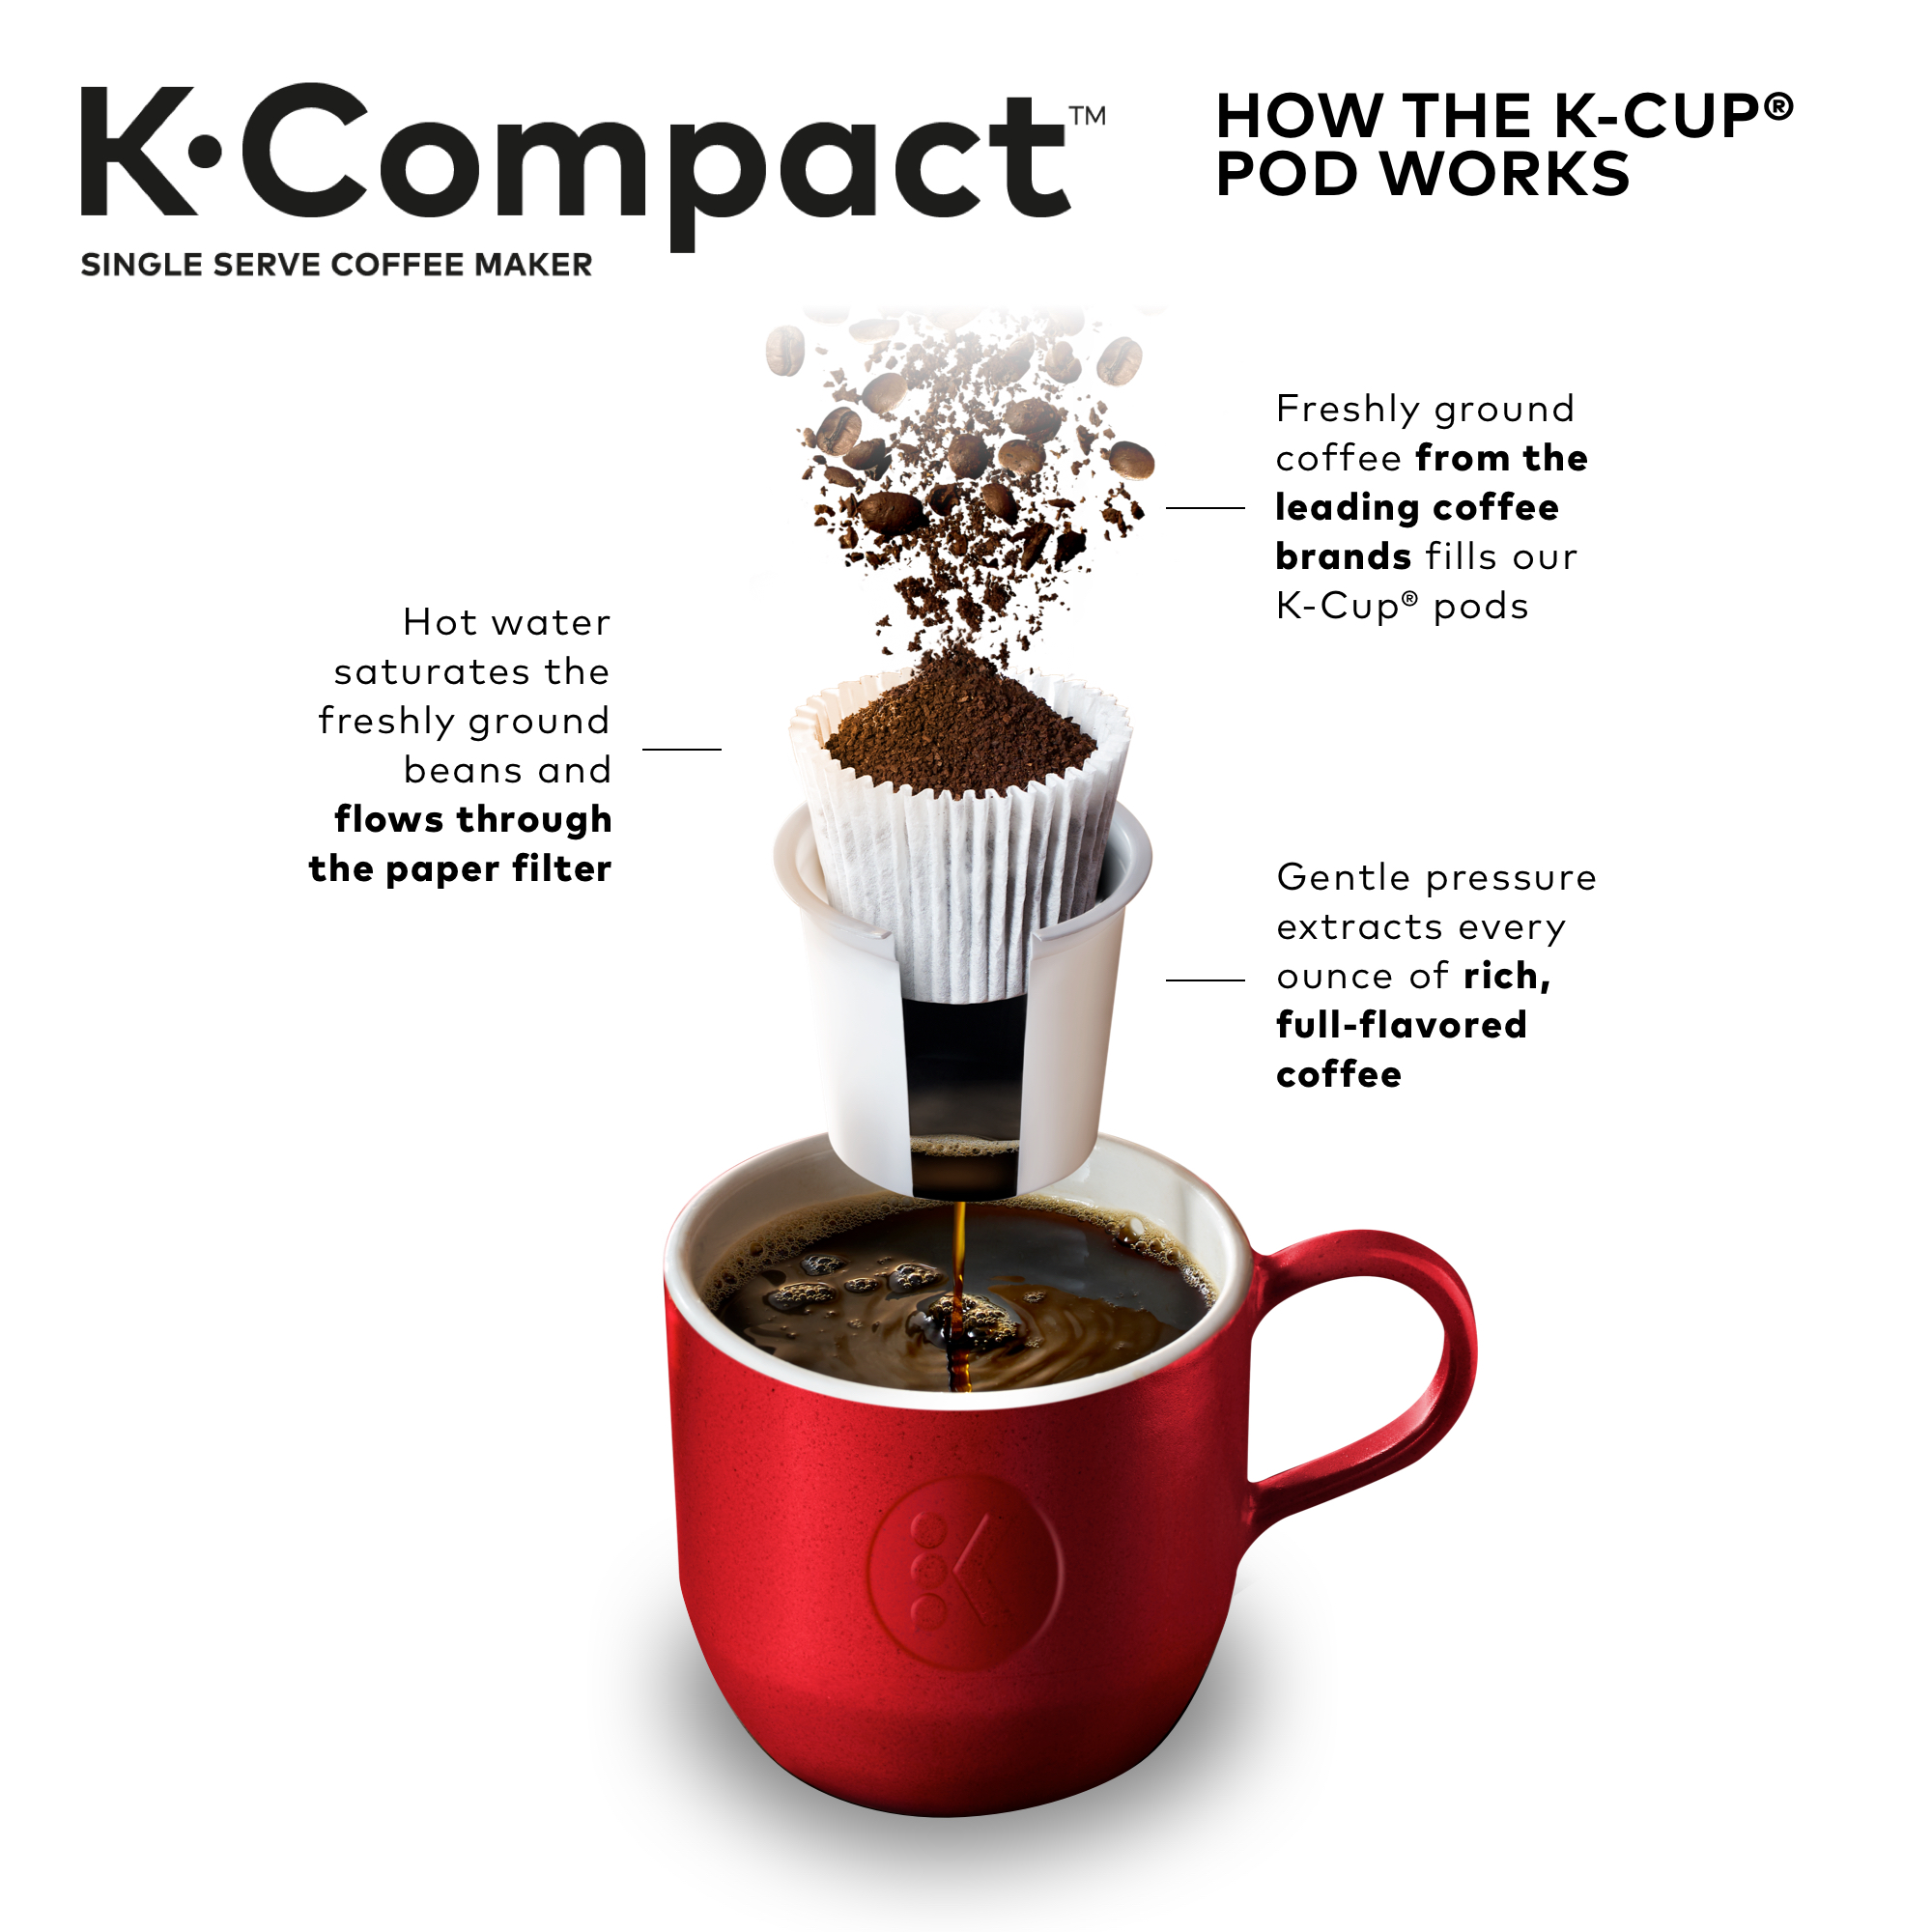 Keurig K Compact Single Serve Cup Pod Coffee Maker Black Caigcircuitwriterpen Click To Enlarge Brand Caig Laboratories